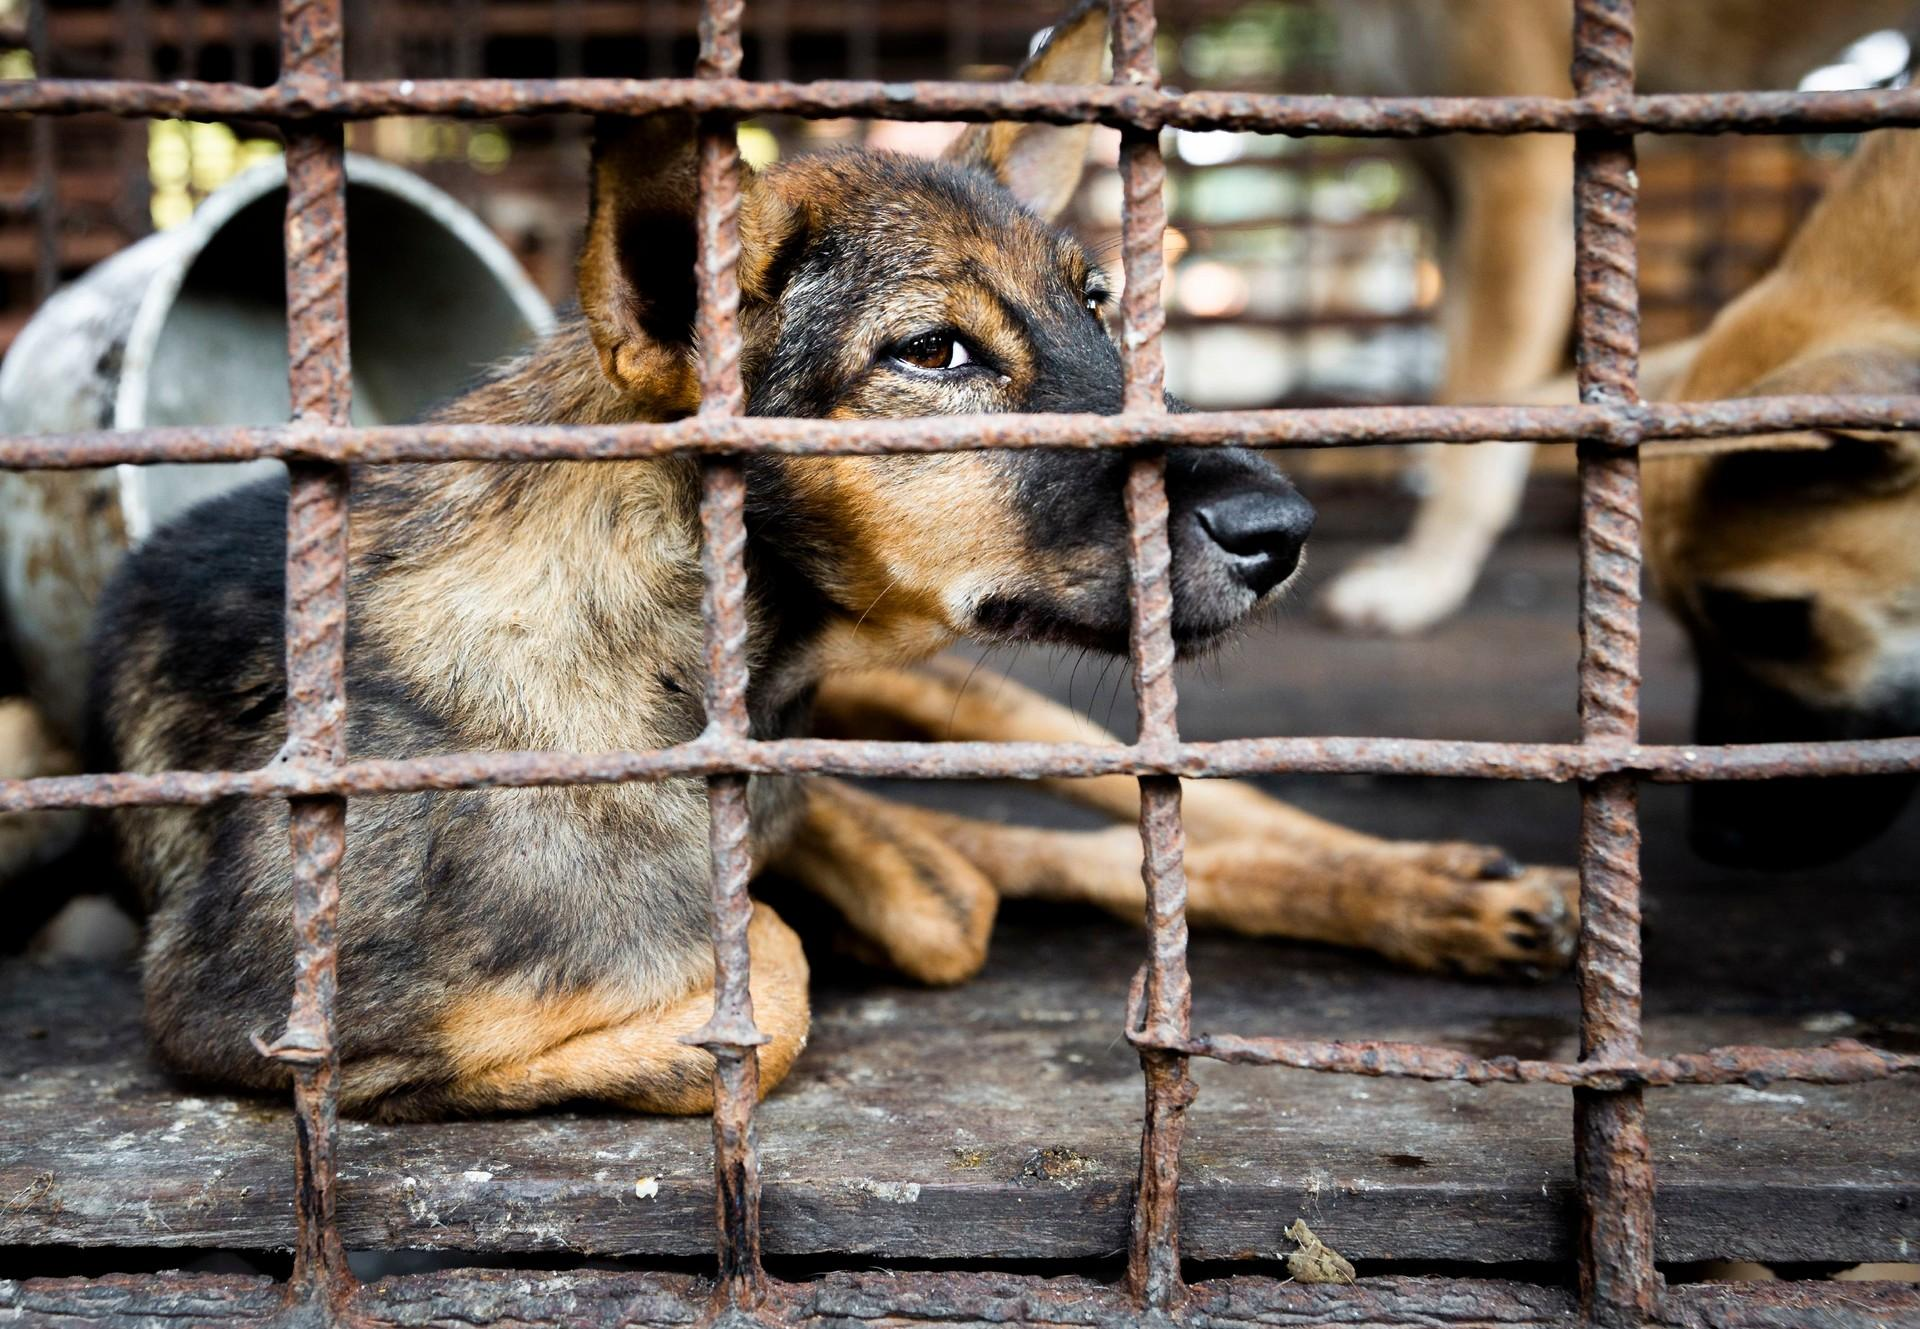 Dogs in cages at a dog meat trader in Siem Reap, Cambodia